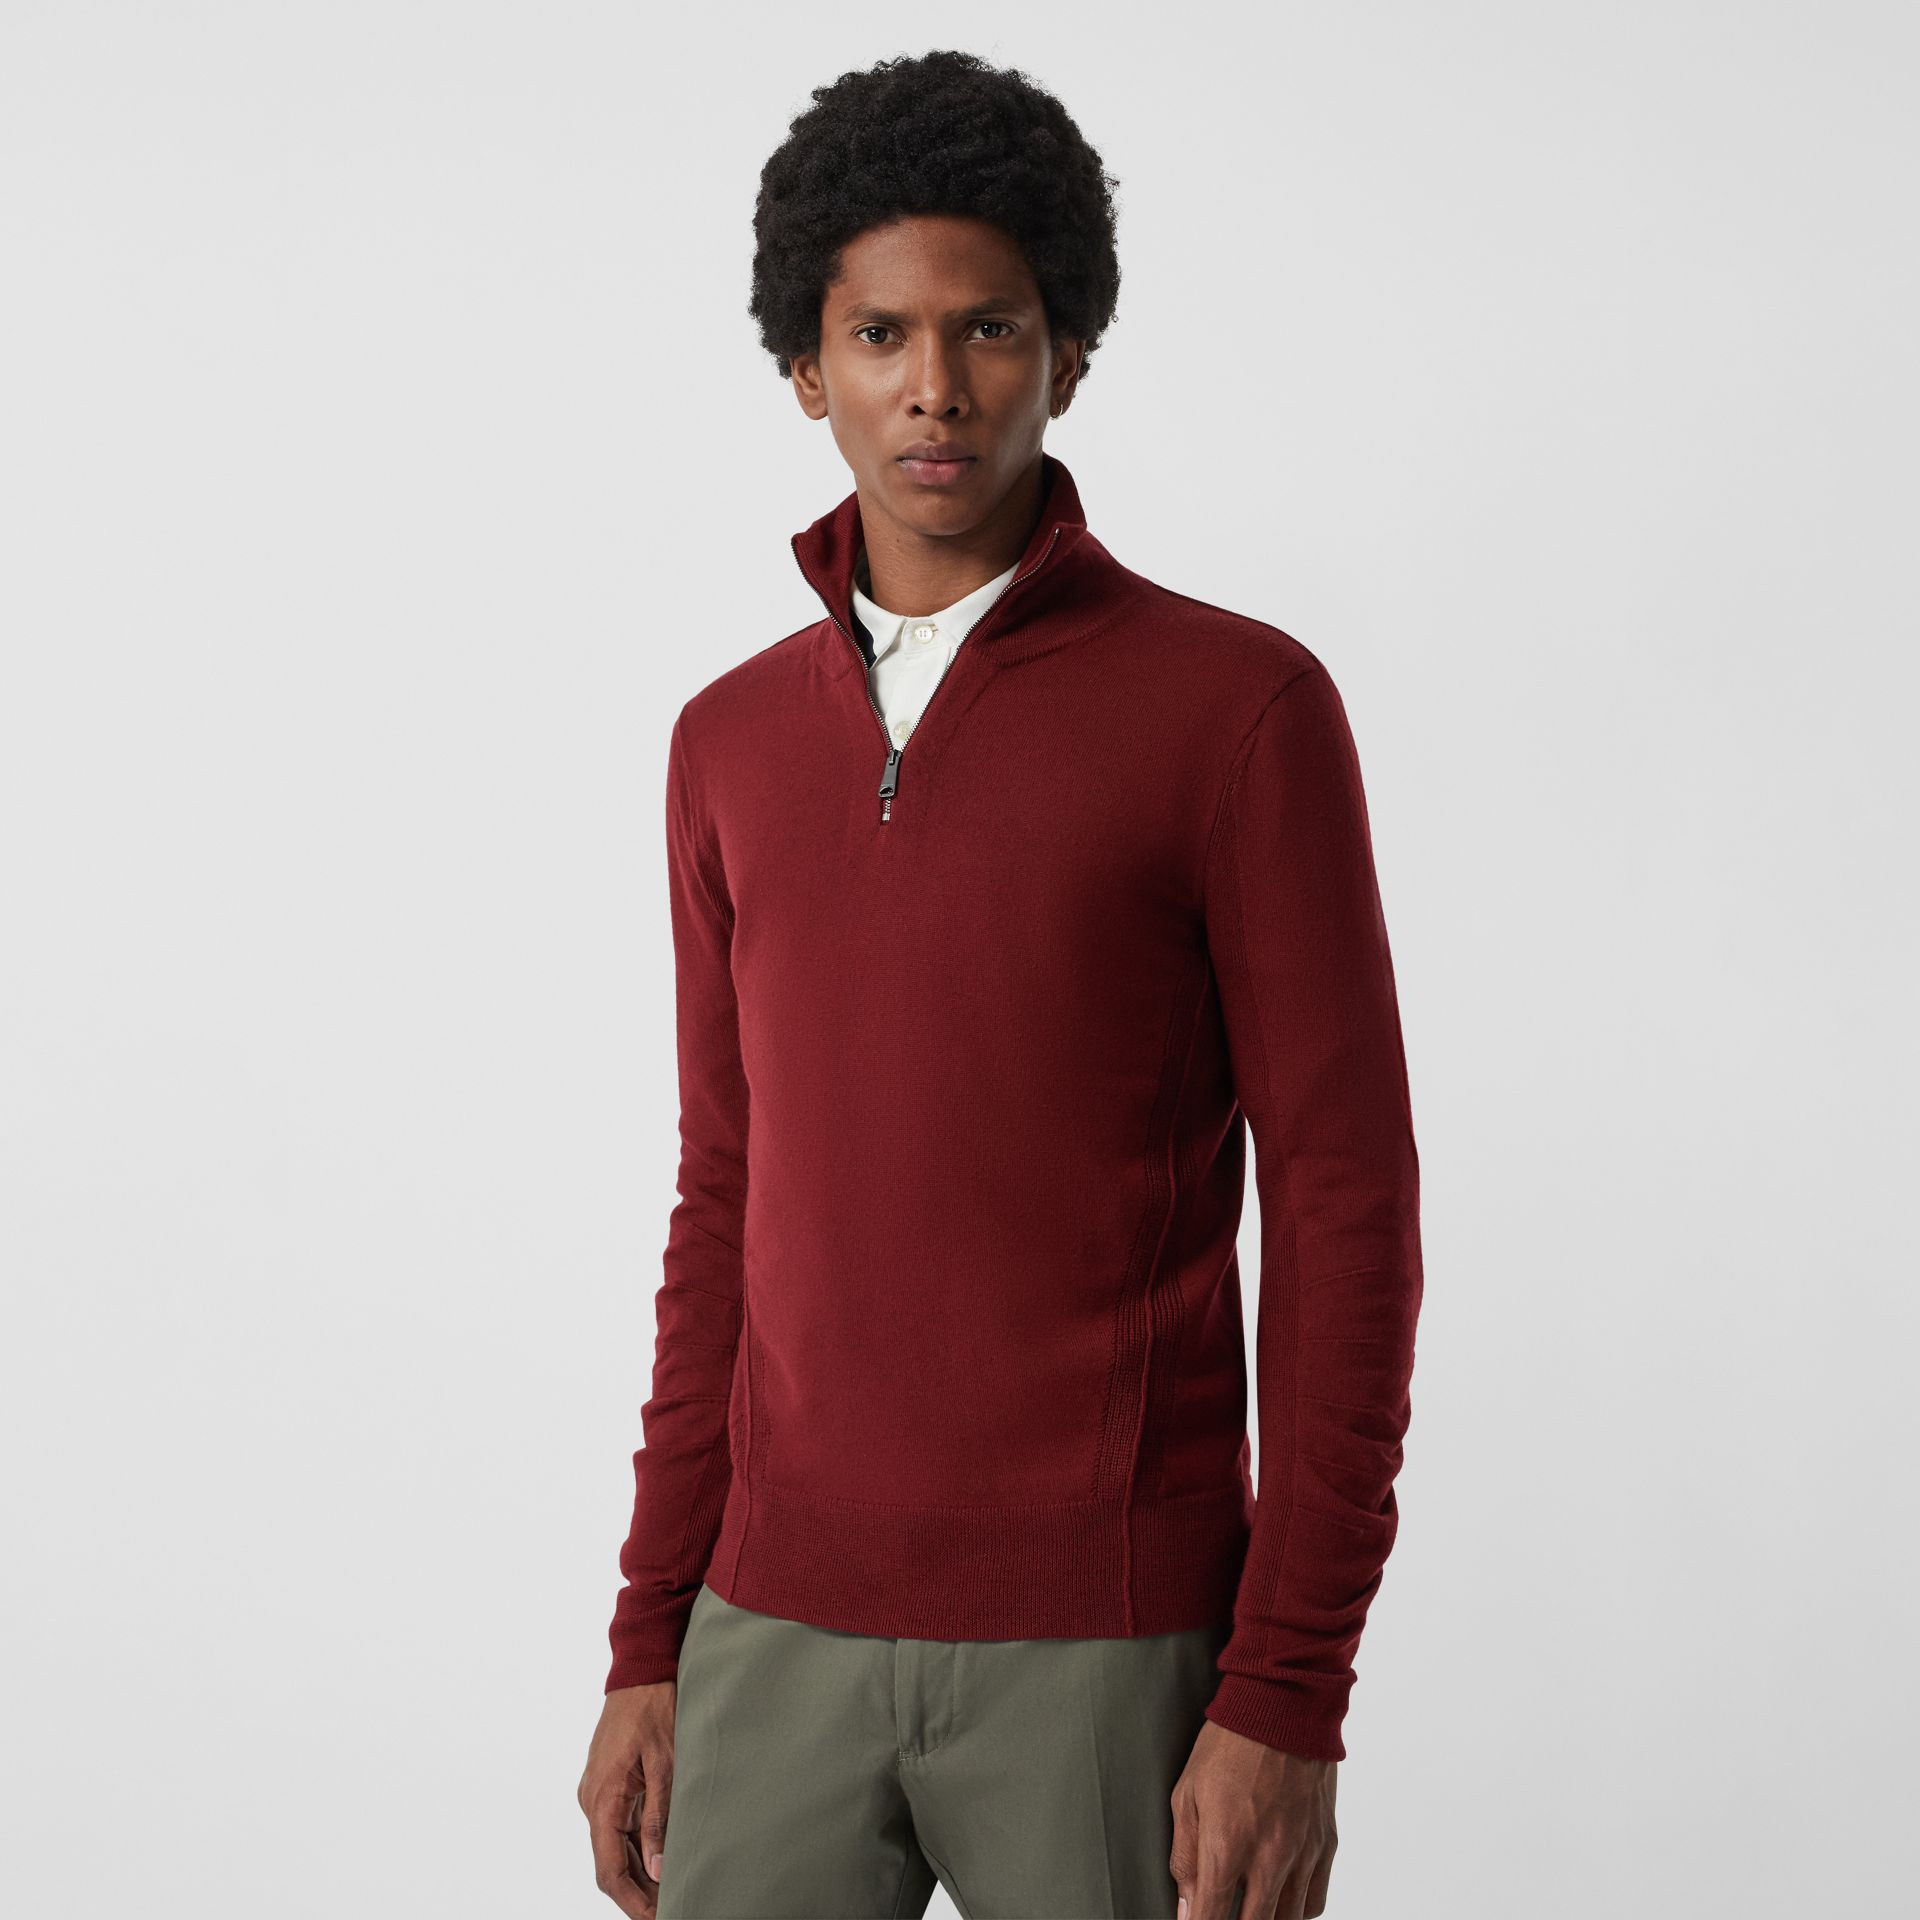 Merino Wool Half-zip Sweater in Burgundy - Men | Burberry - gallery image 4